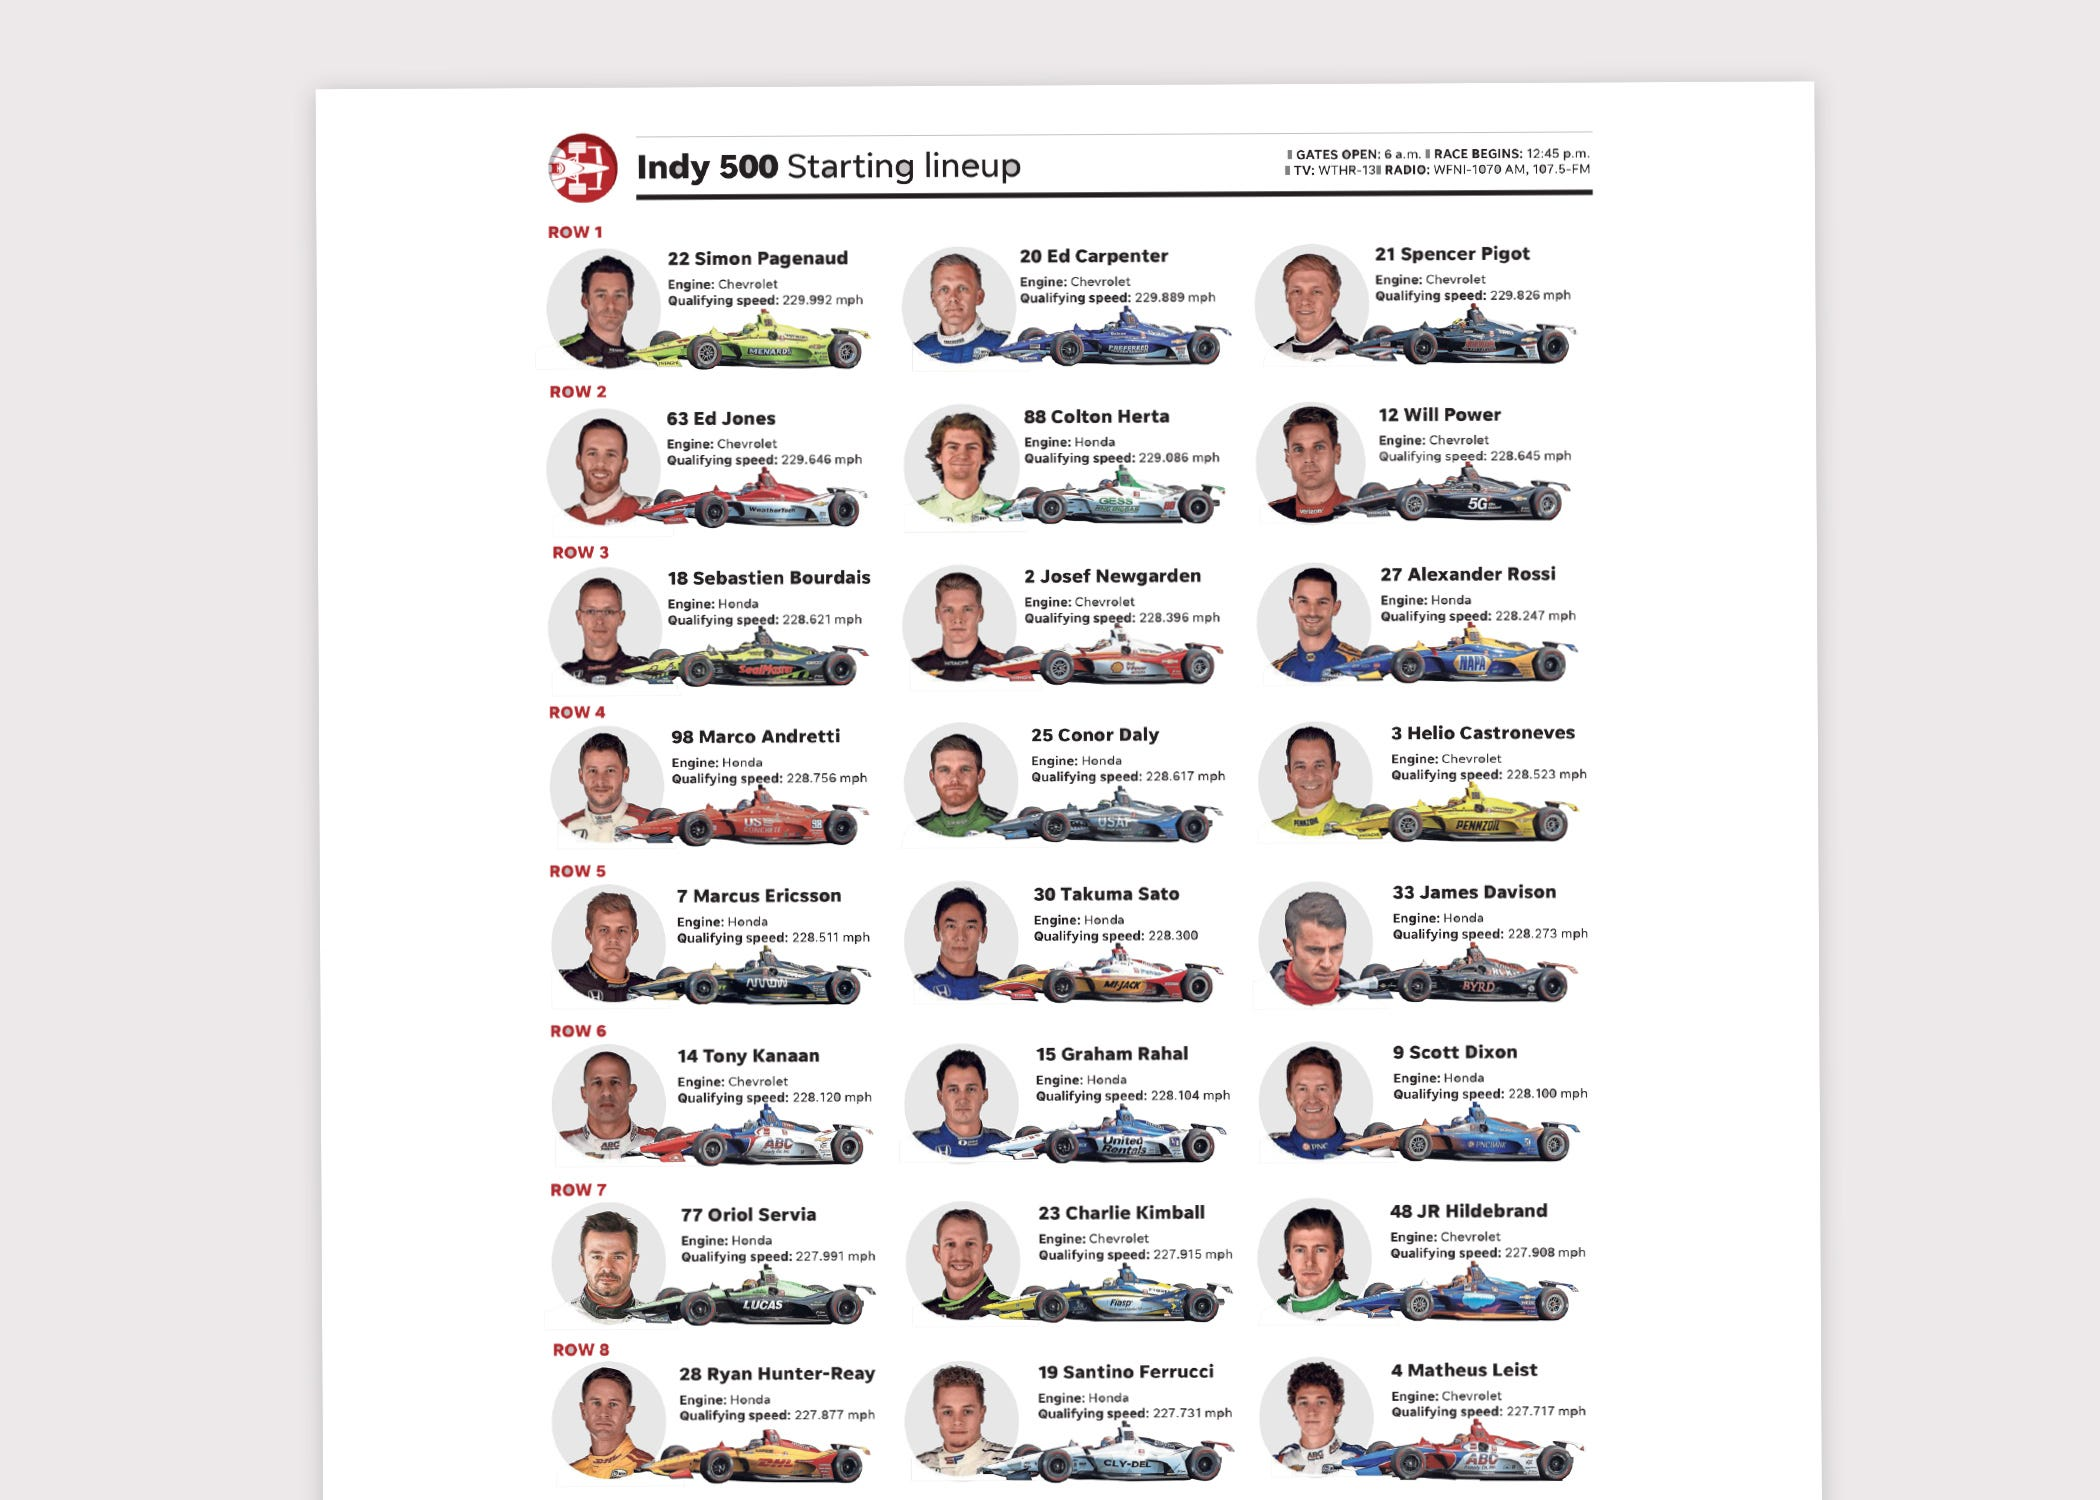 image regarding Printable Indy 500 Starting Grid identify Indy 500 lineup: Printable starting off grid for the 2019 race